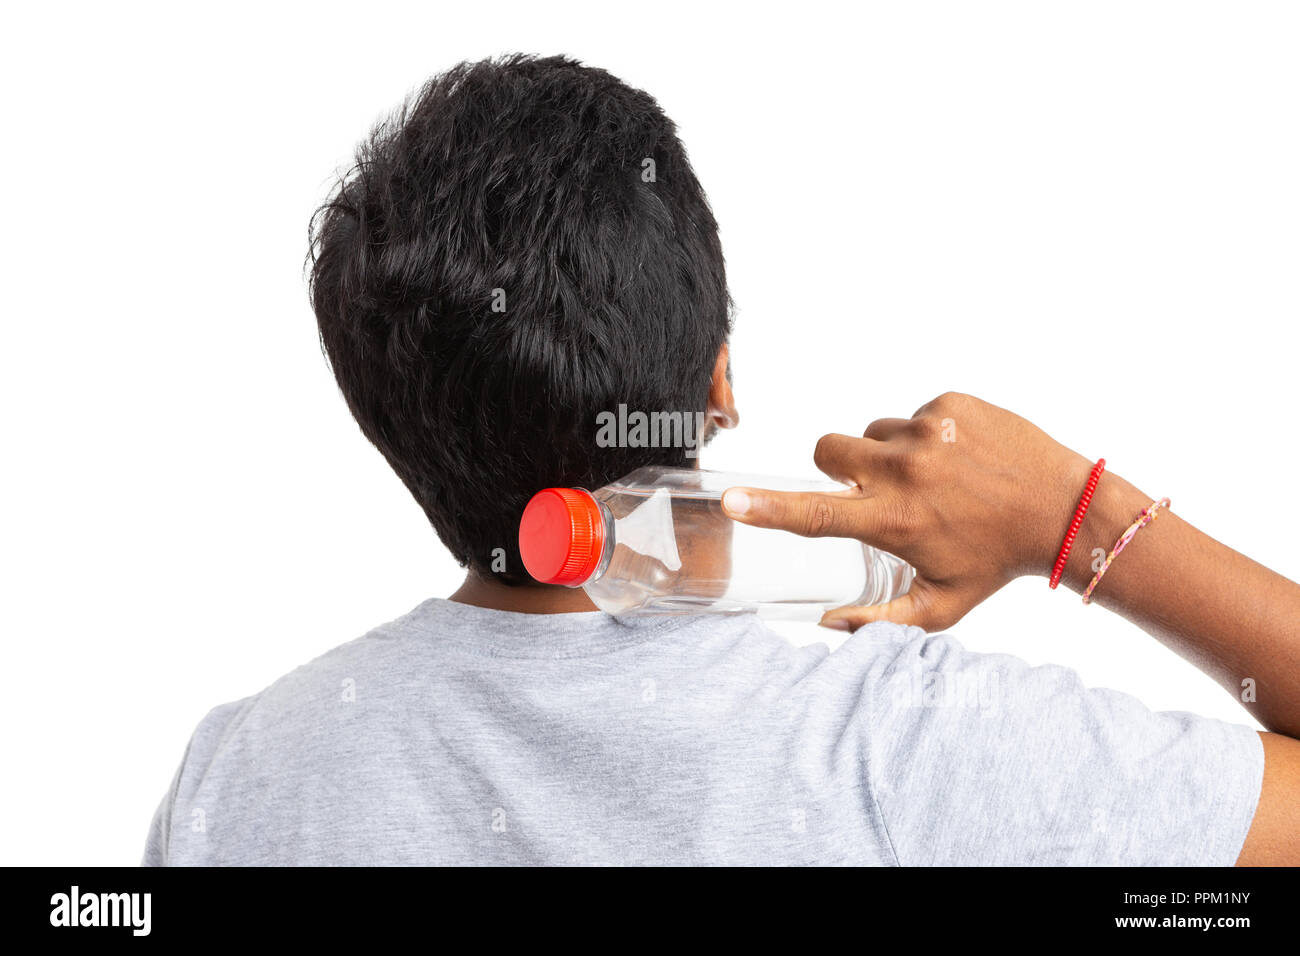 Man from India touching neck with plastic water bottle with the back to the camera isolated on white background as stay hydrated concept - Stock Image